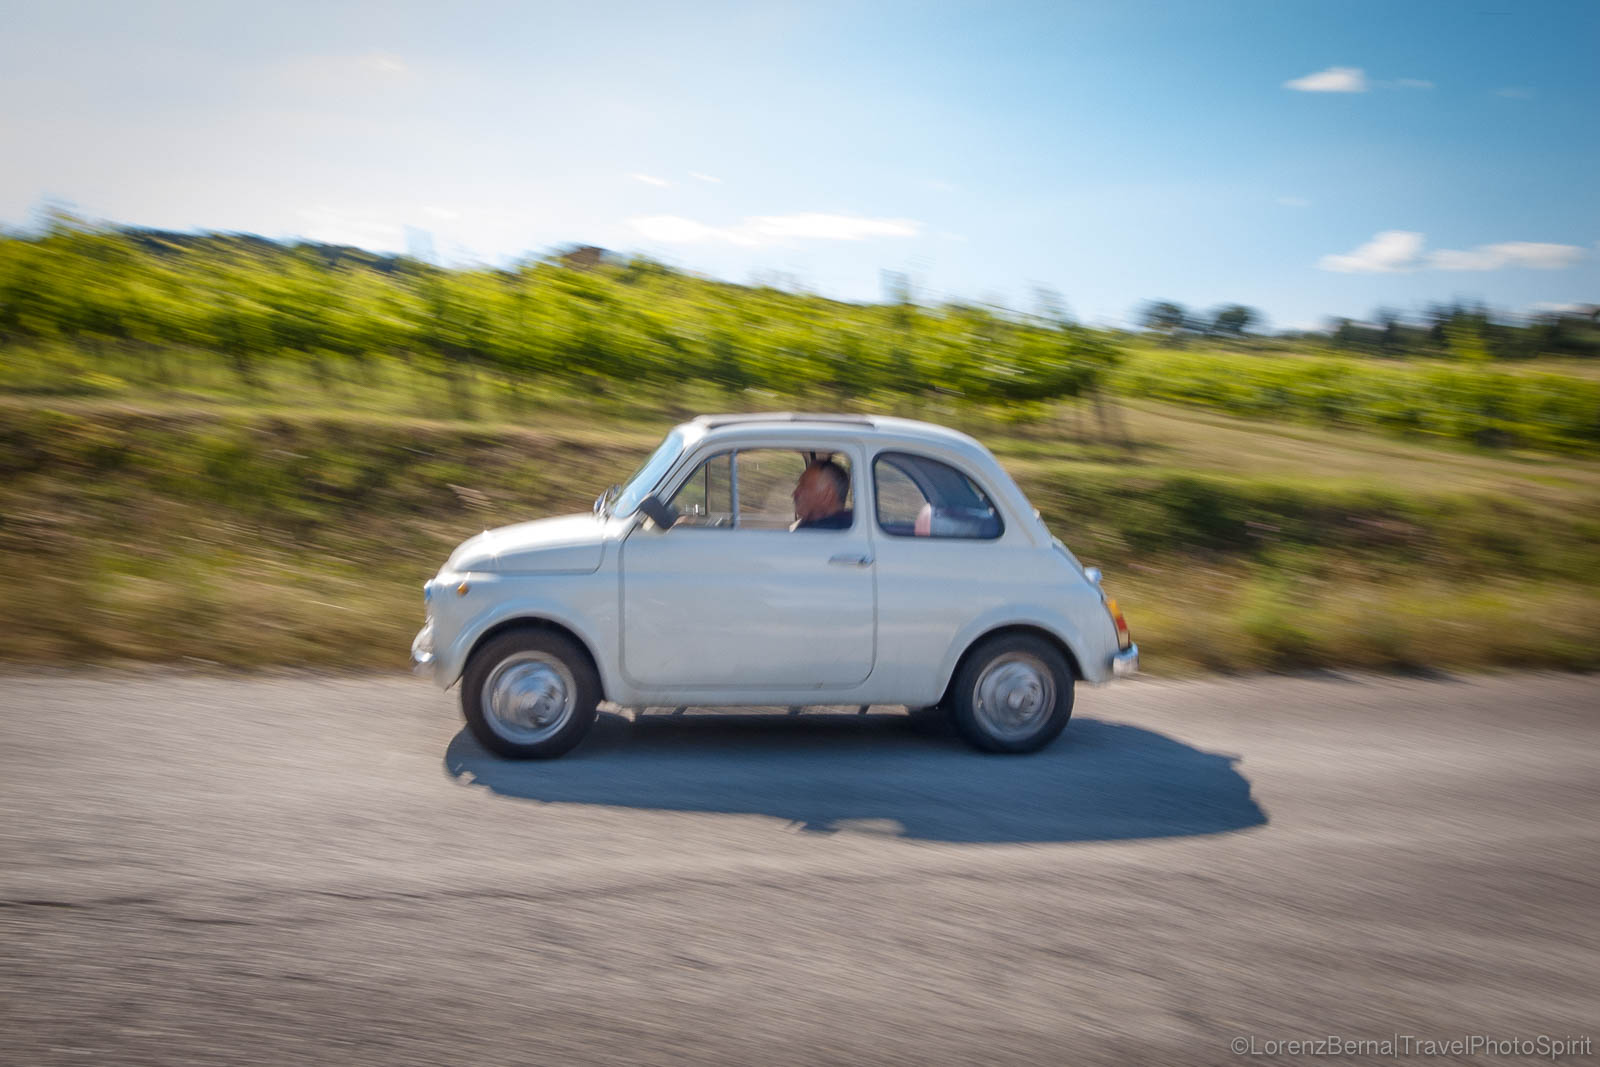 An old Fiat 500 driving on the roads of Tuscany, Italy